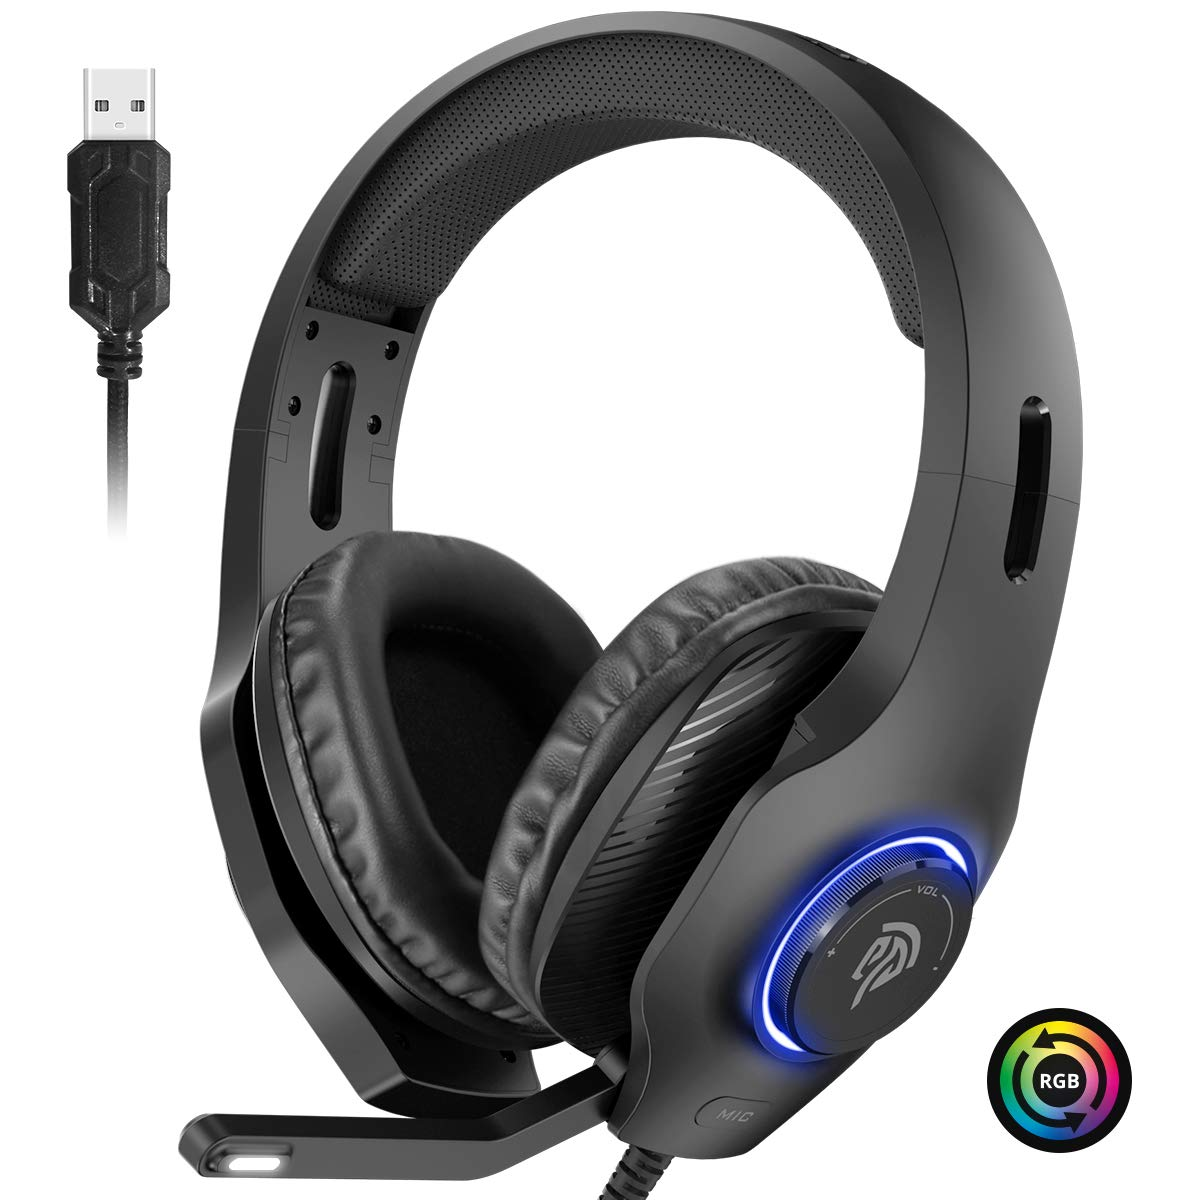 EasySMX PS4 Headset, Headset with Mic, [7.1 Surround Sound], [Noise Reduction Mic], On-Earcup Control, RGB LED Lights, Professional PC Gaming Headset, Gaming Headphones for PS4, PS3, Laptop by EasySMX